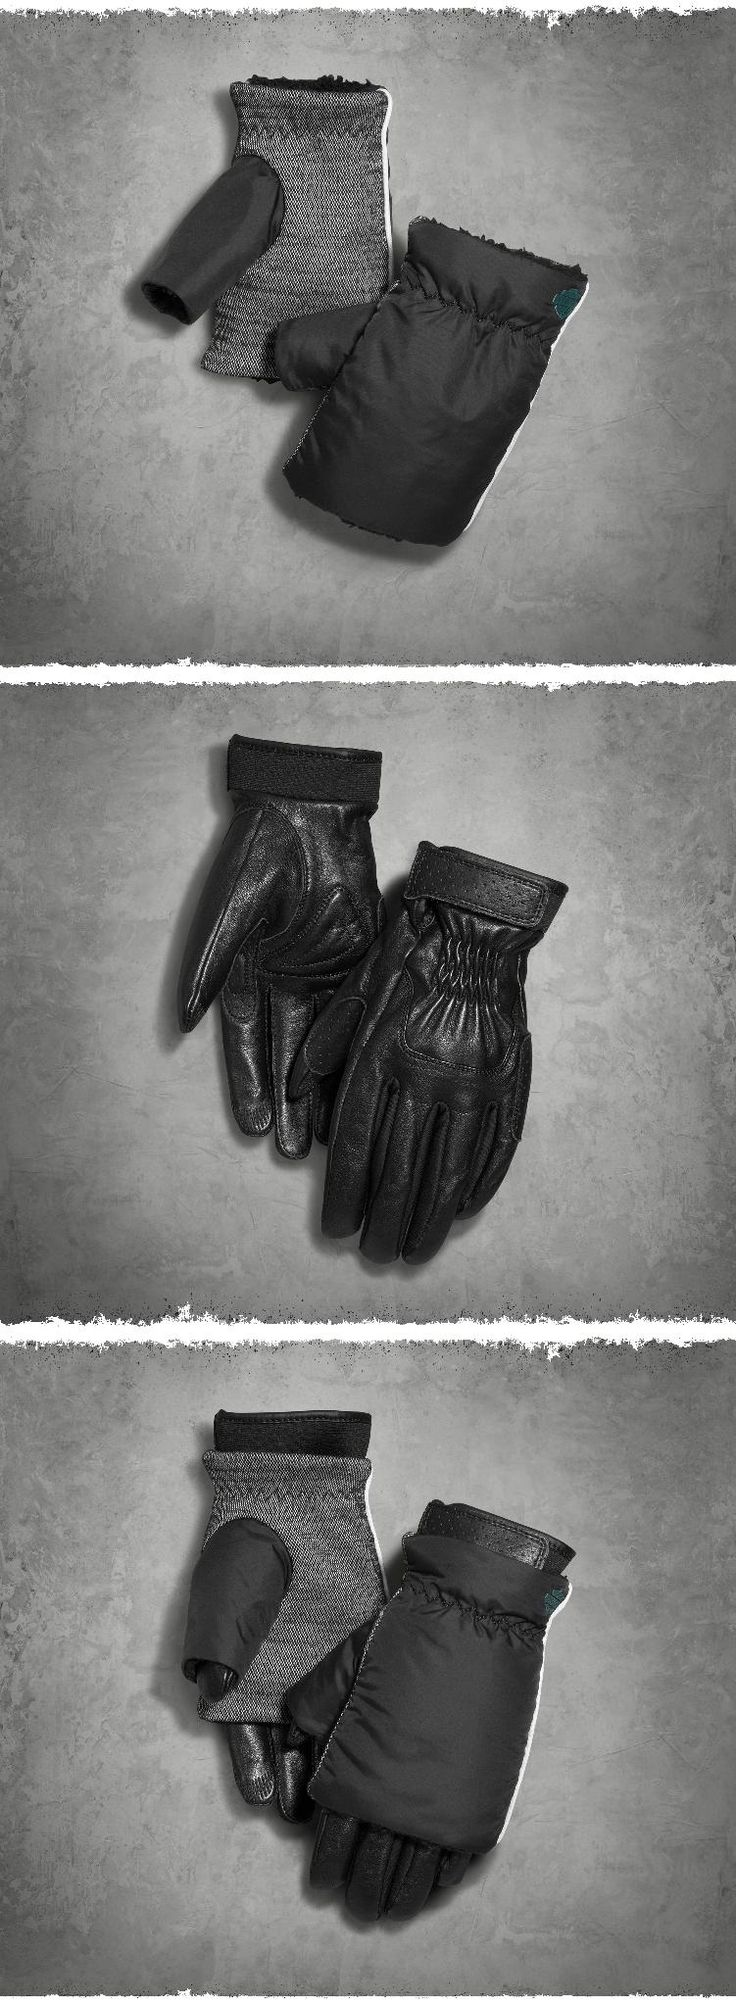 We doubled the comfort, versatility, and style. | Harley-Davidson Women's Cache 2-in-1 Gloves